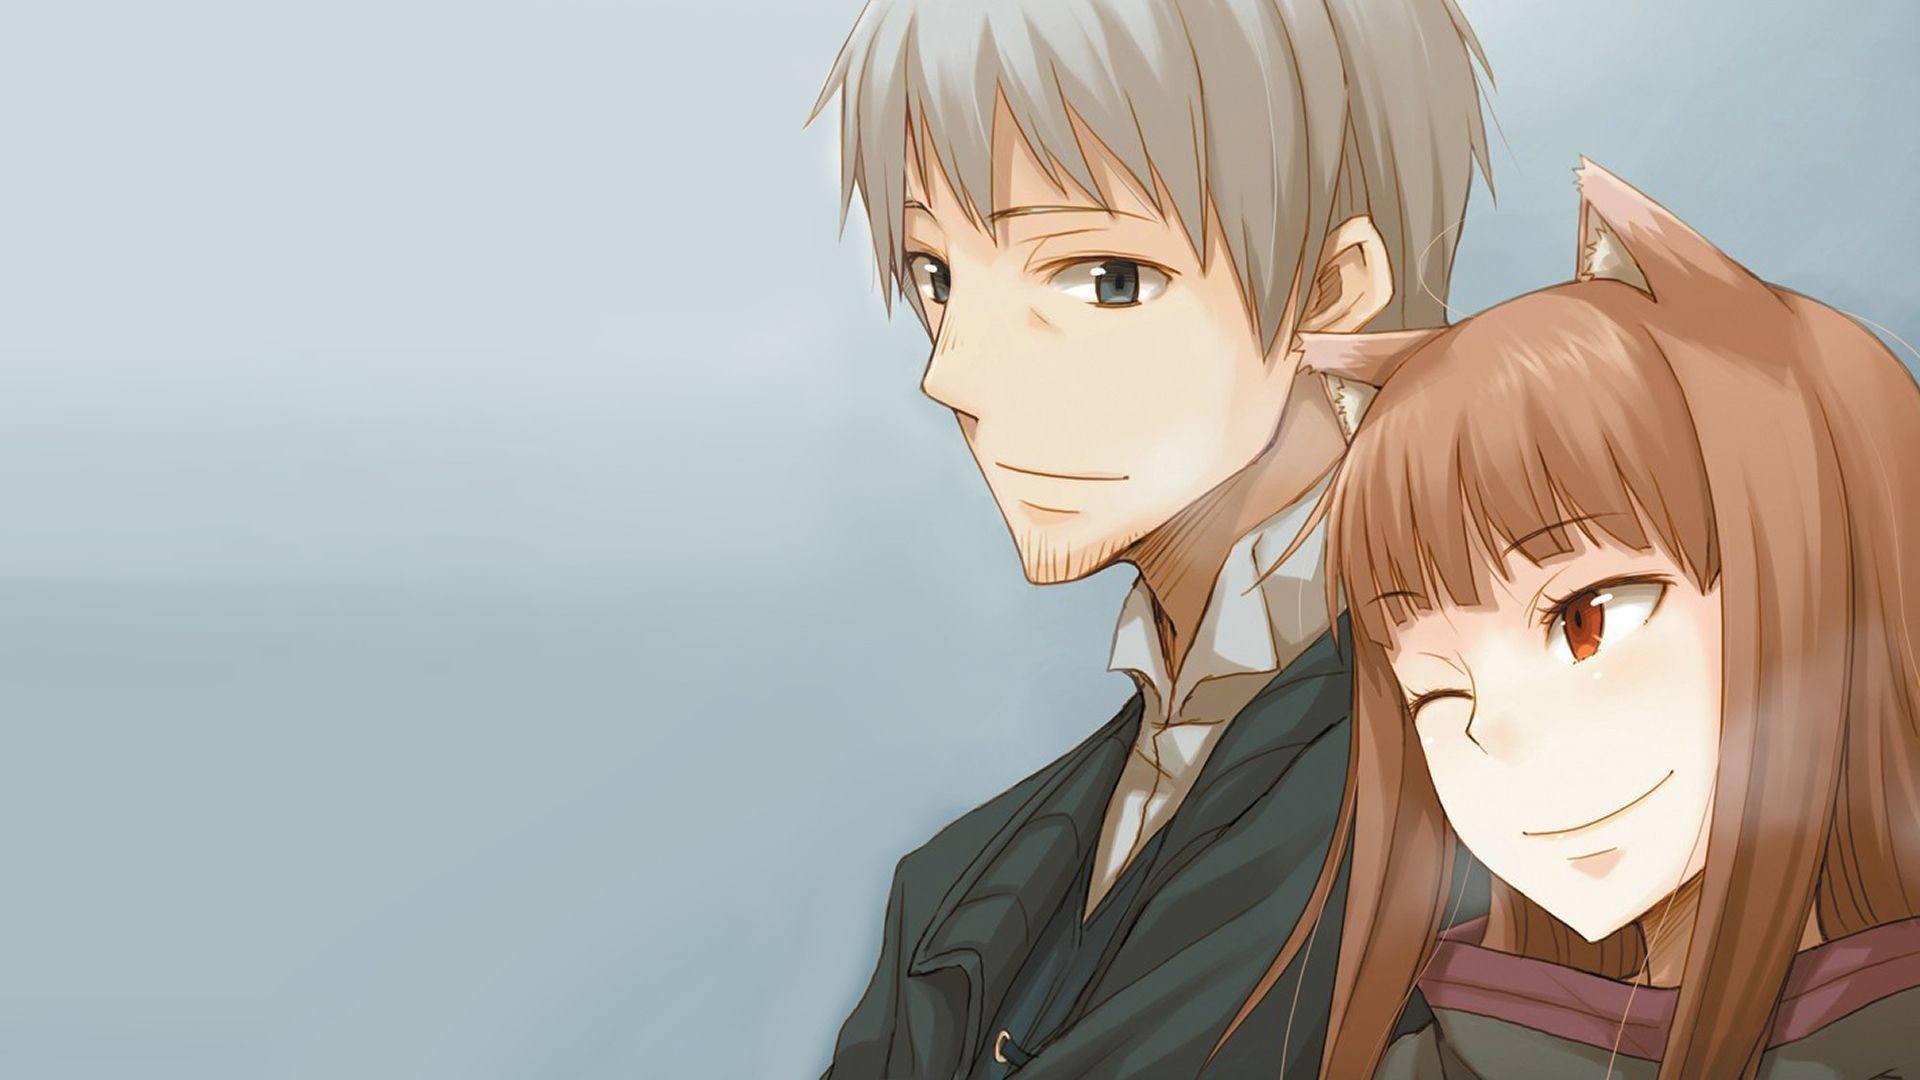 … Spice And Wolf Widescreen Wallpaper – #7223 …